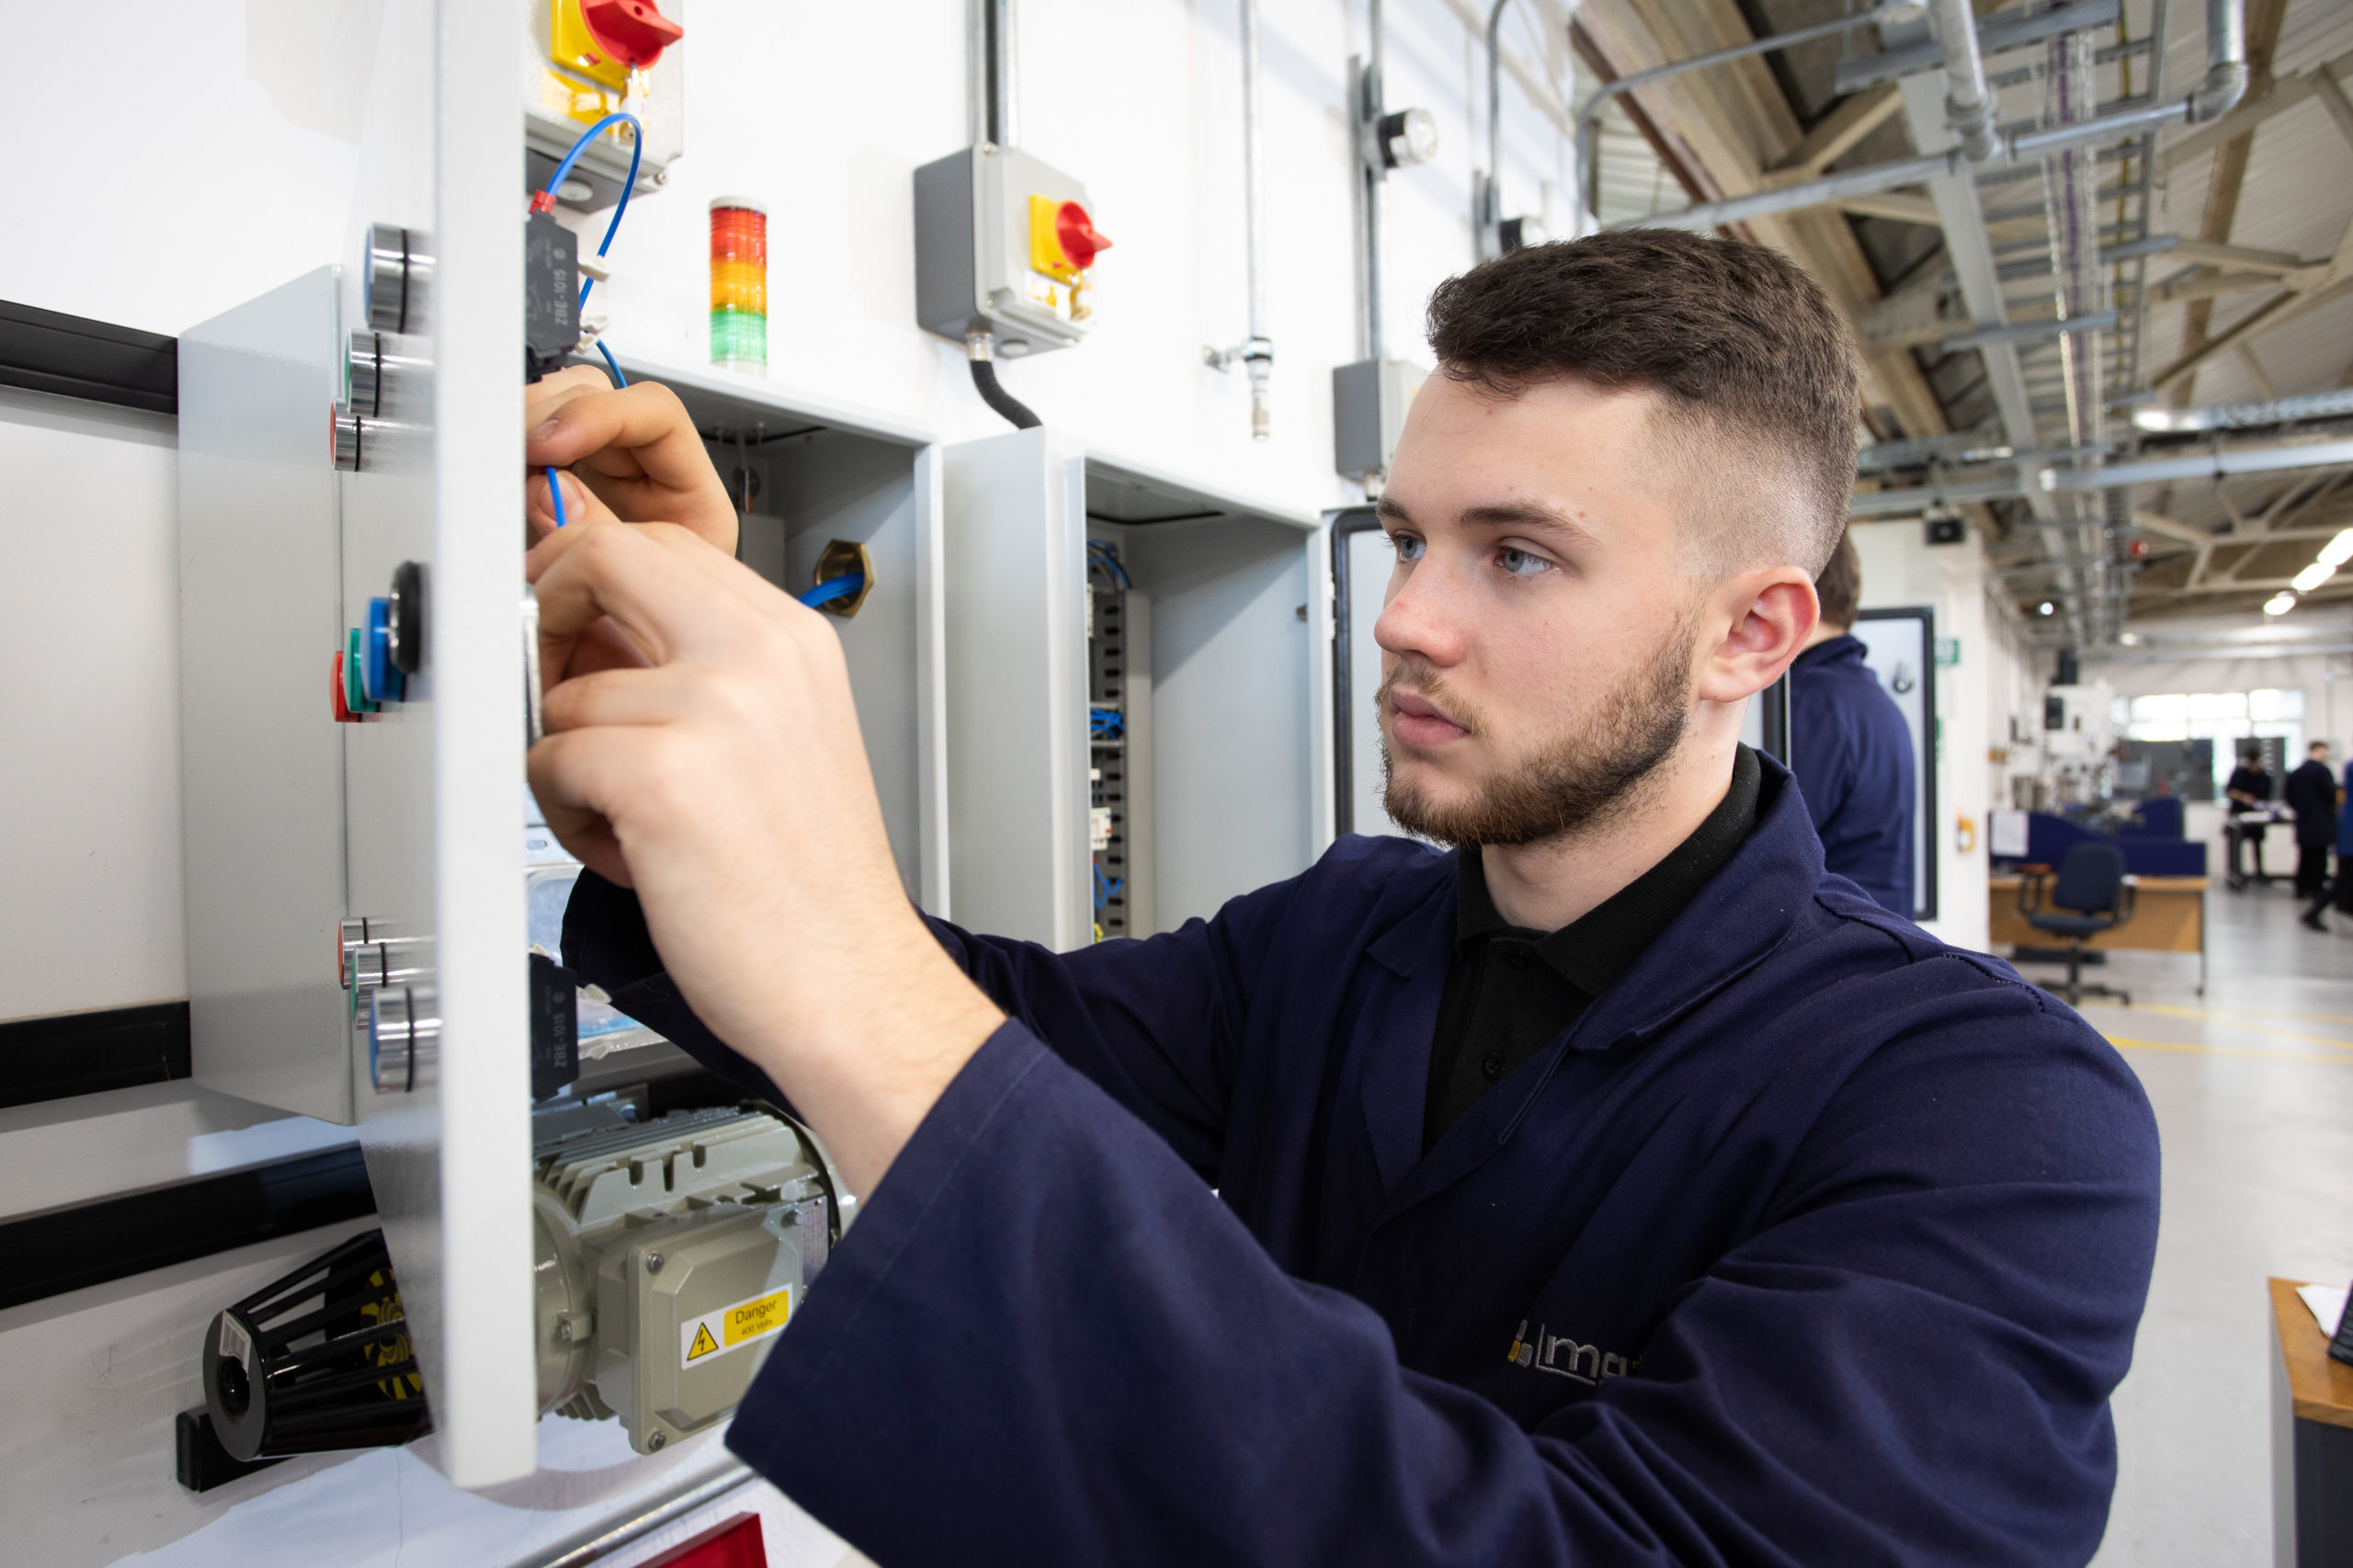 Engineering apprentice working on electrical installation